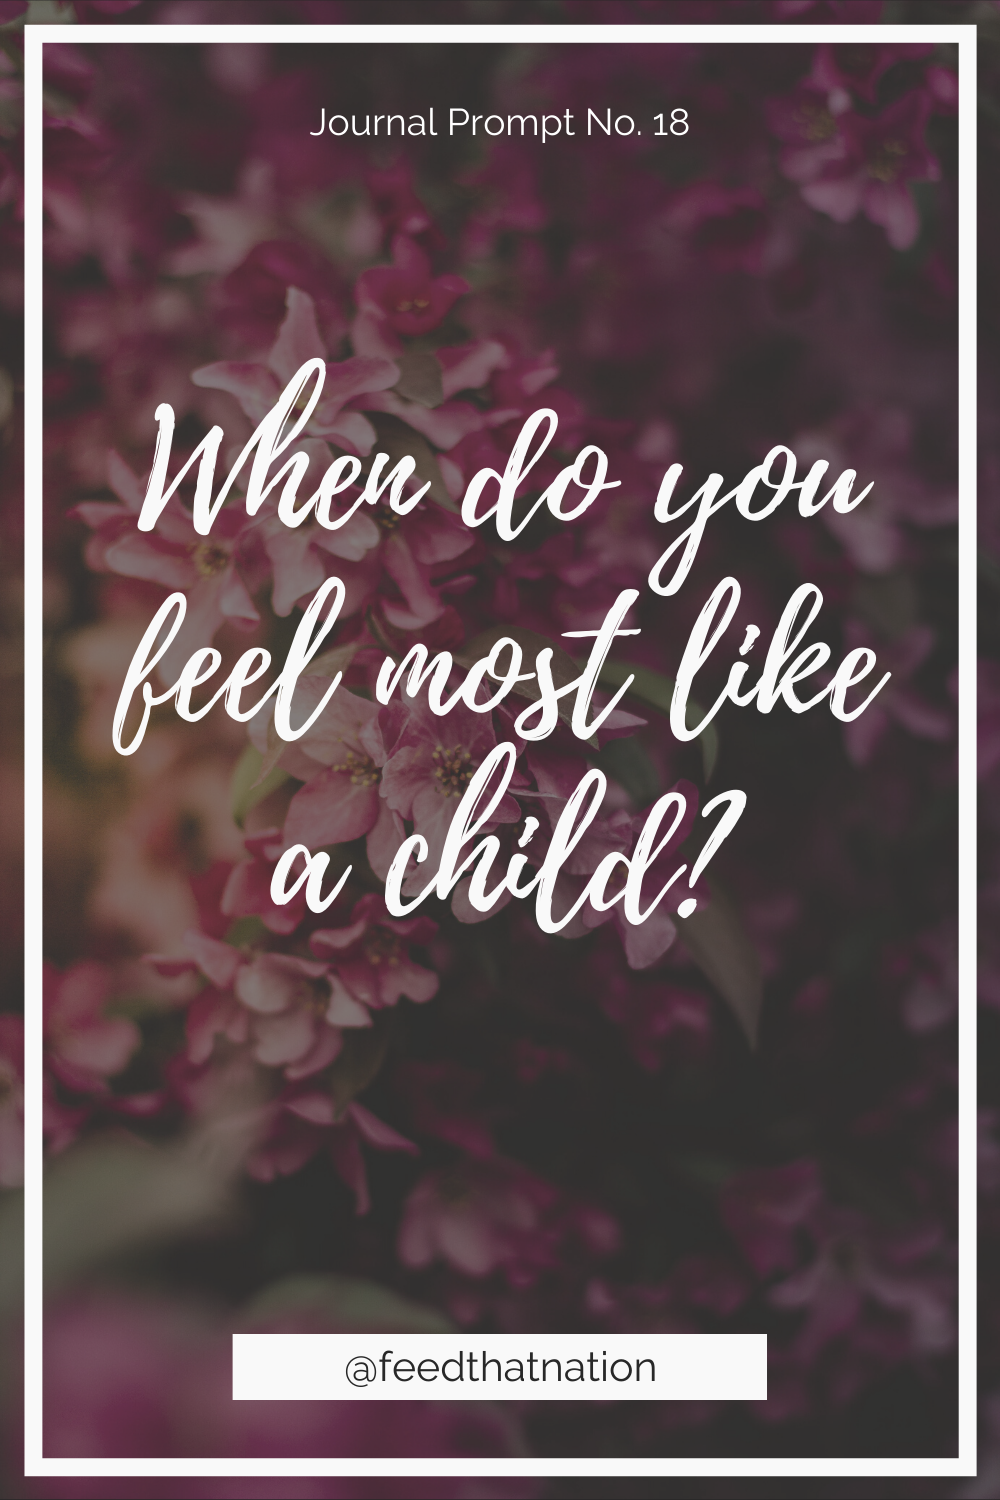 When do you feel most like a child